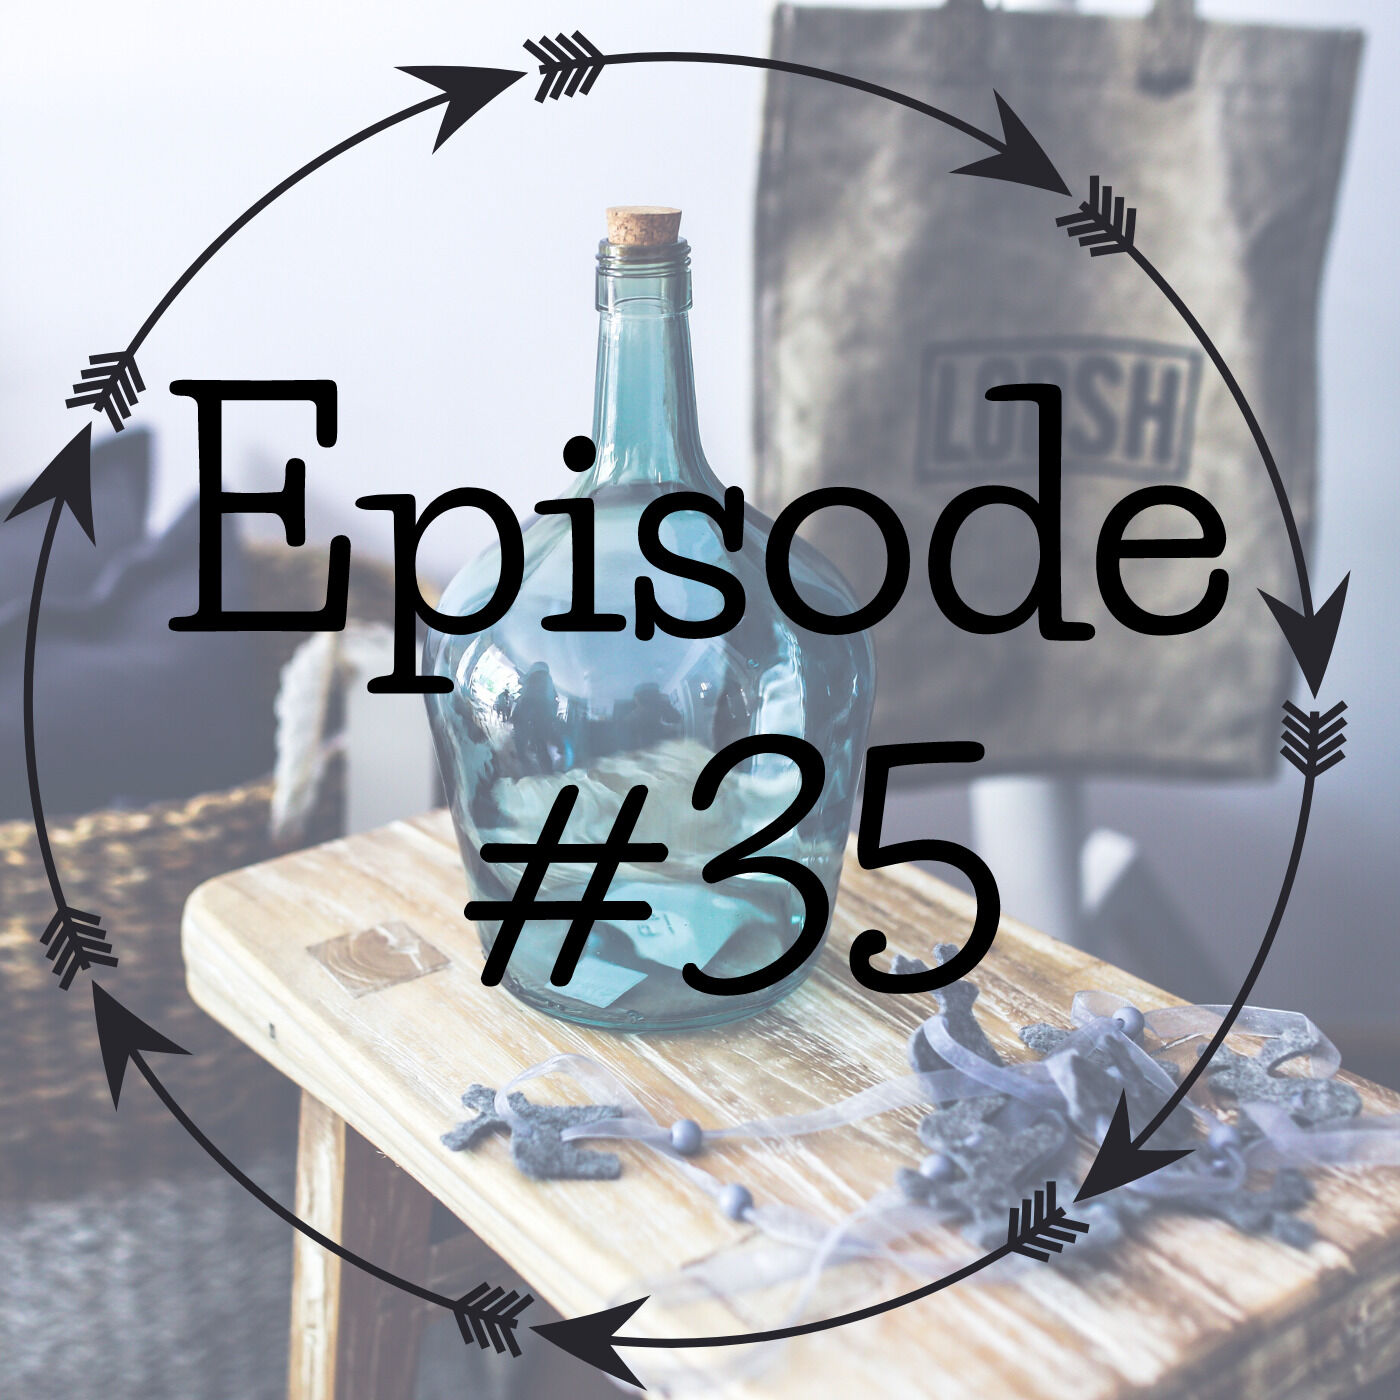 Episode #35: A dilemma about mentoring and a questions about shared care (PS. no mentioning of the 'c' word in this podcast!)